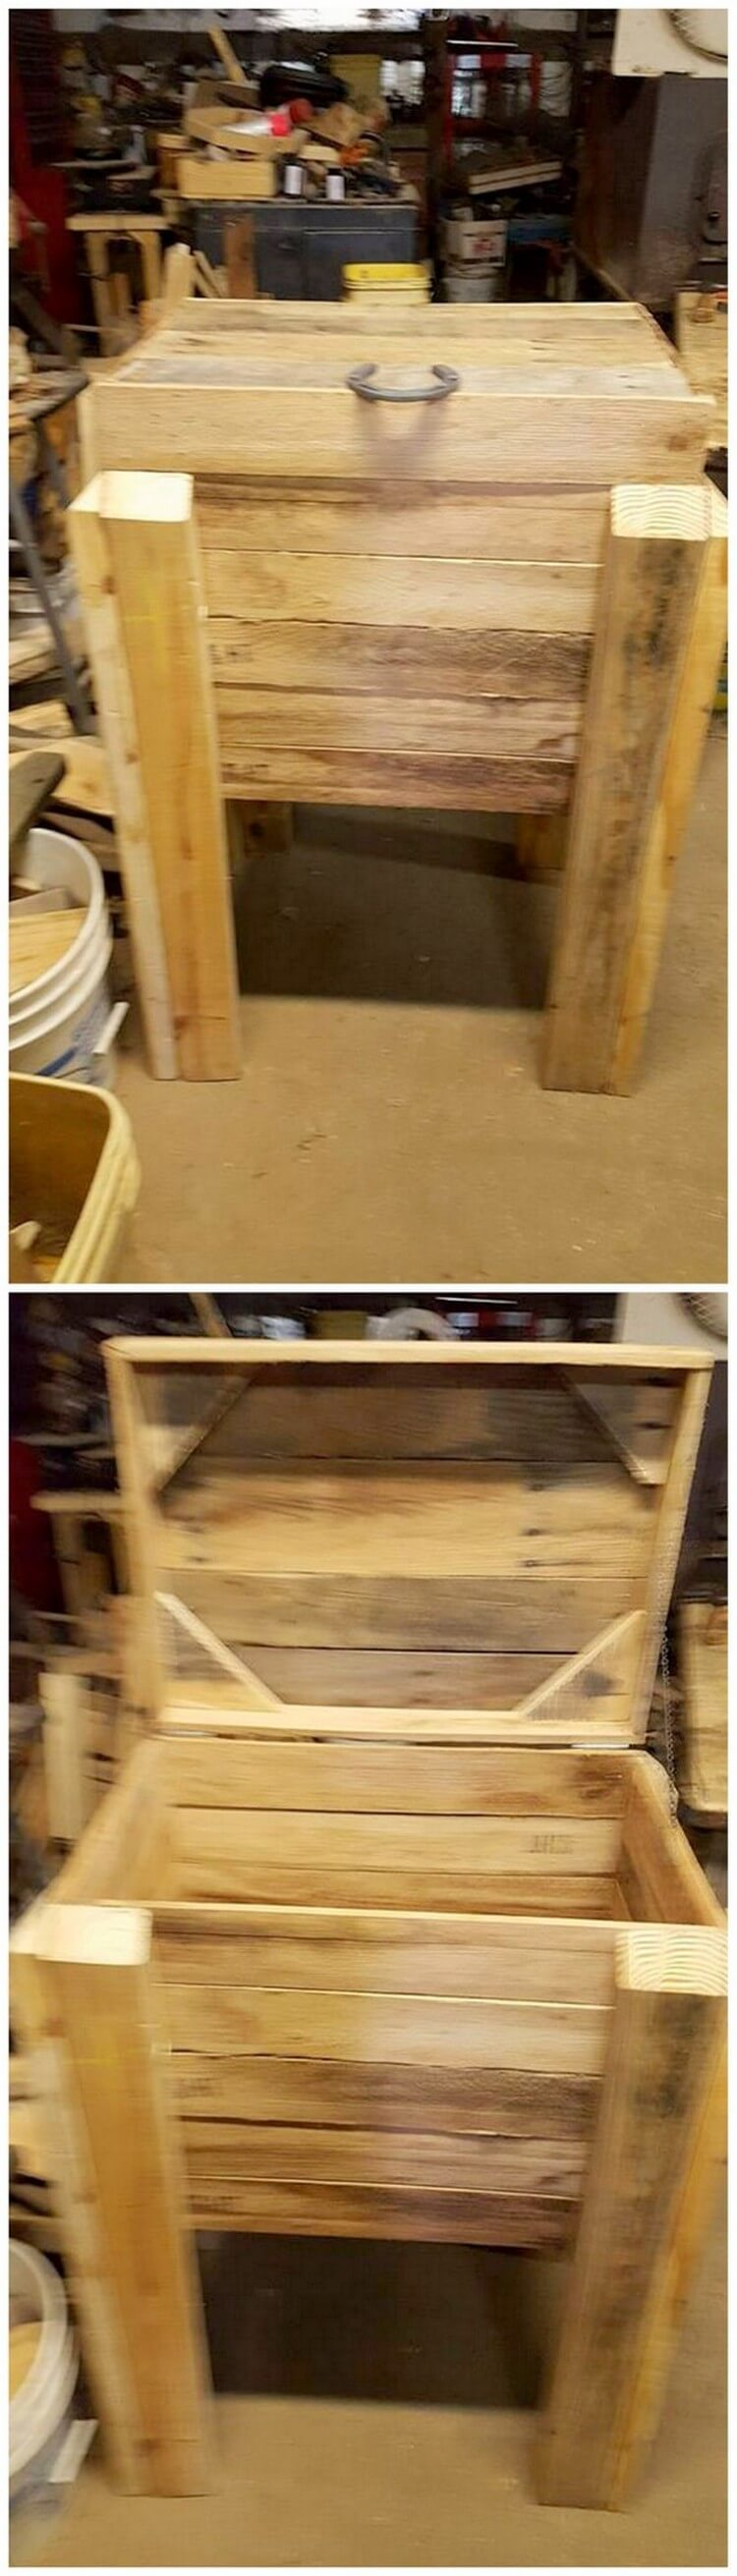 Pallet Storage Box with Legs